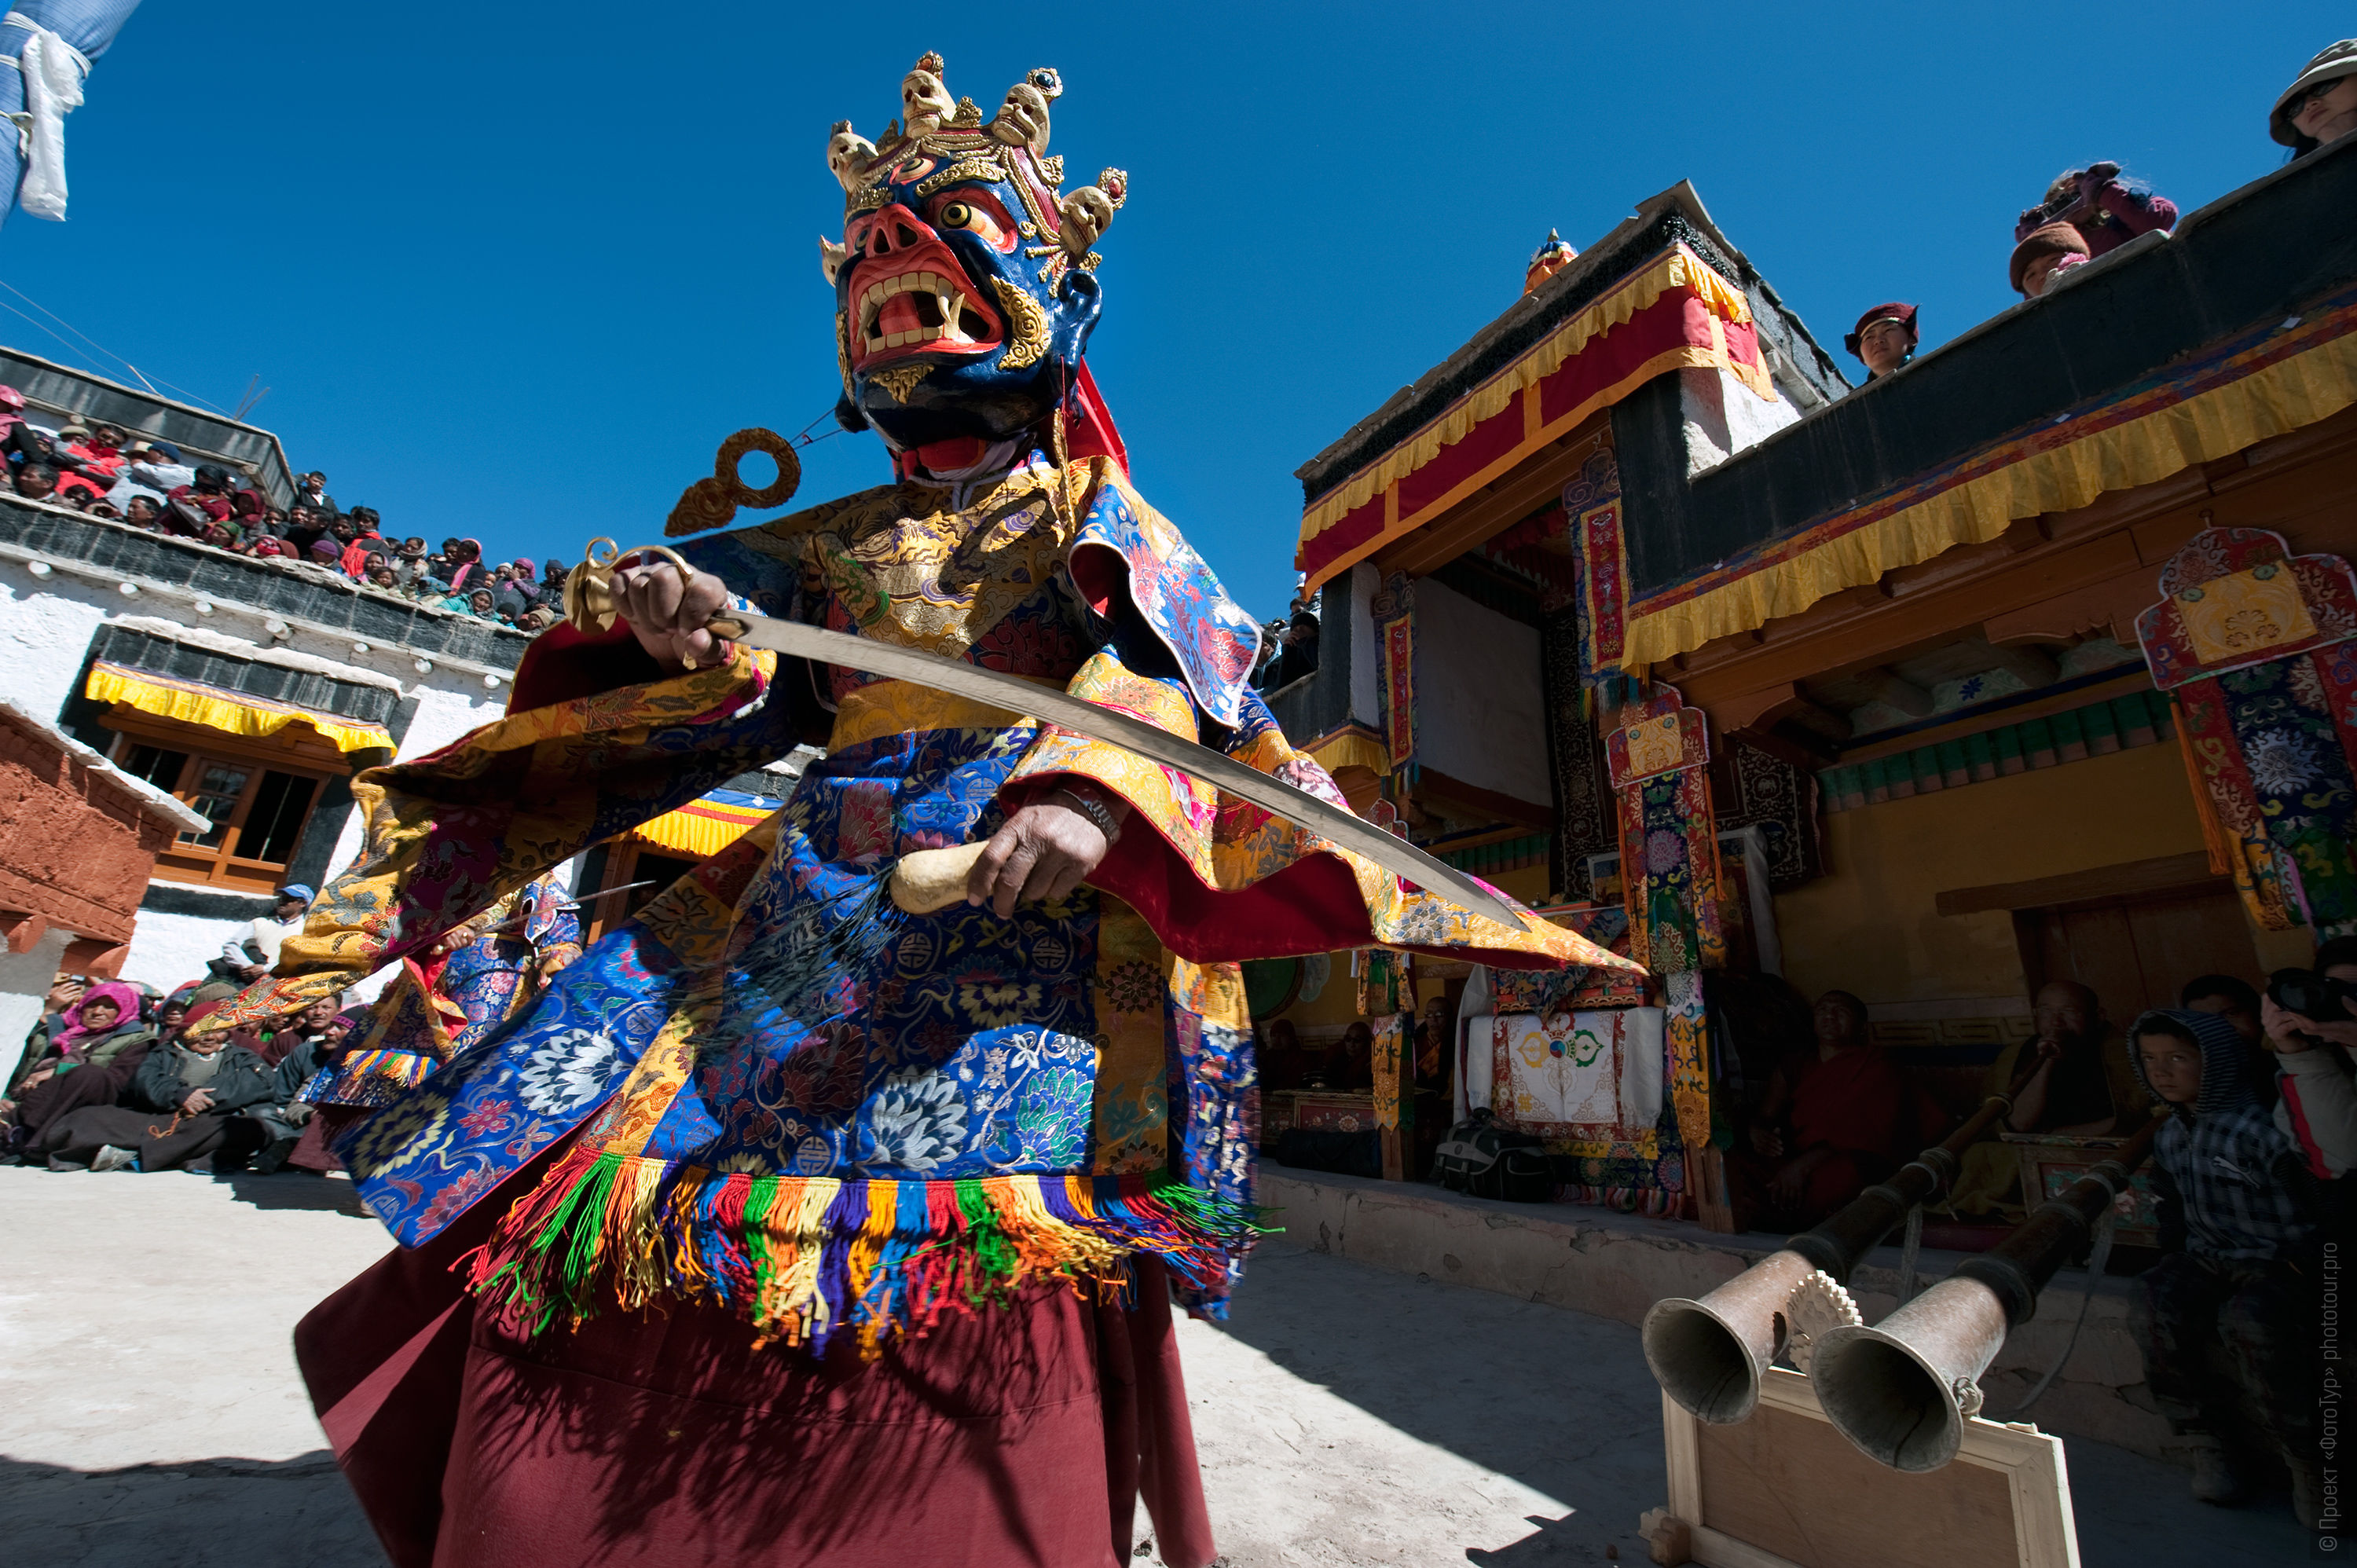 Mahakala Dance in the Monastery Stock. Phototour to Tibet for the winter mysteries in Ladakh, the monasteries Stok and Matho, 01.03. - 03/10/2020